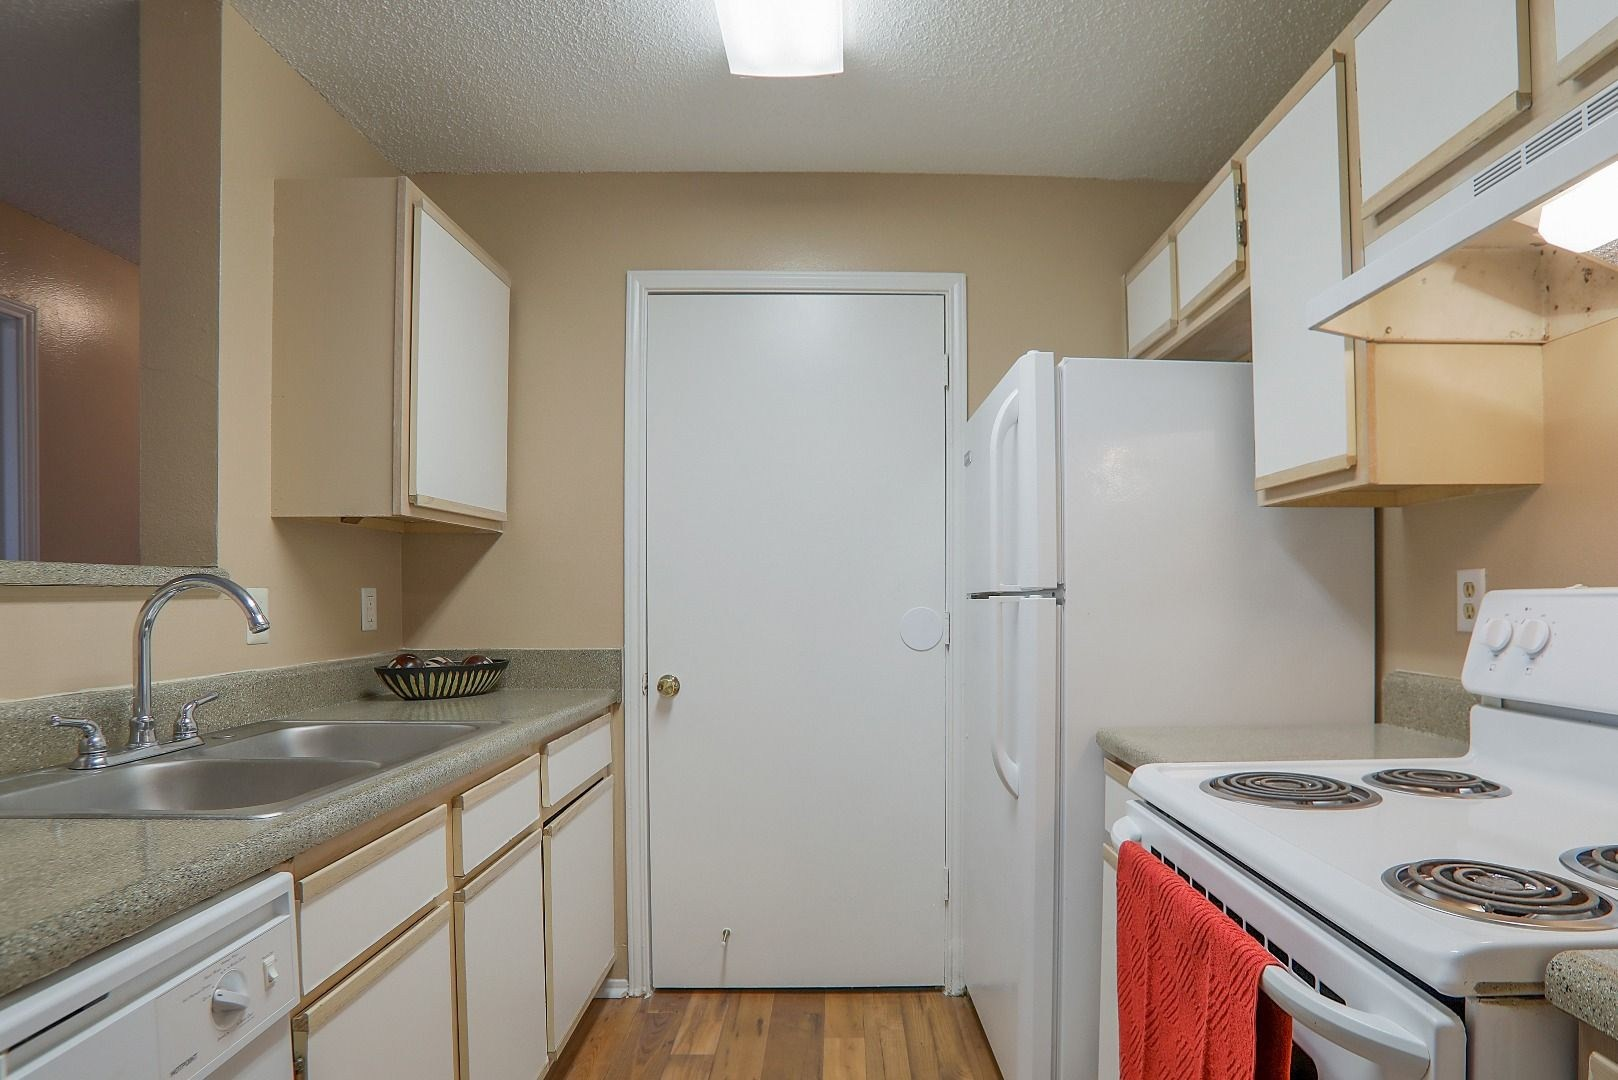 Apartments Near Day Spa Career College Providence Pointe for Day Spa Career College Students in Ocean Springs, MS